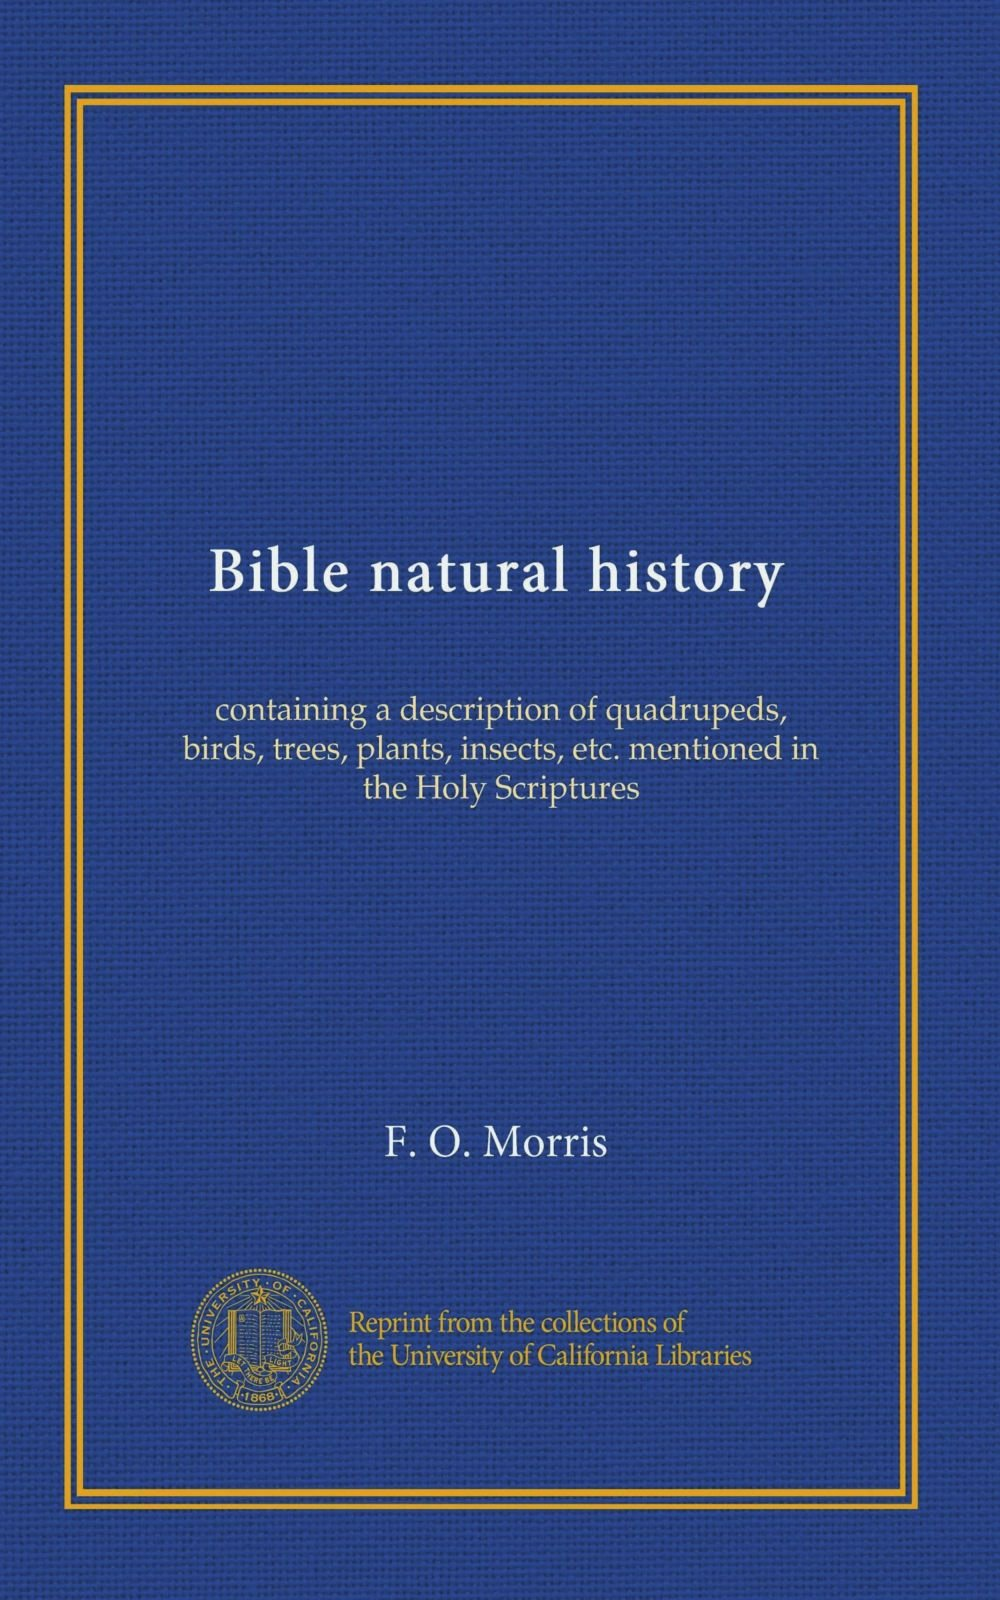 Read Online Bible natural history: containing a description of quadrupeds, birds, trees, plants, insects, etc. mentioned in the Holy Scriptures ebook